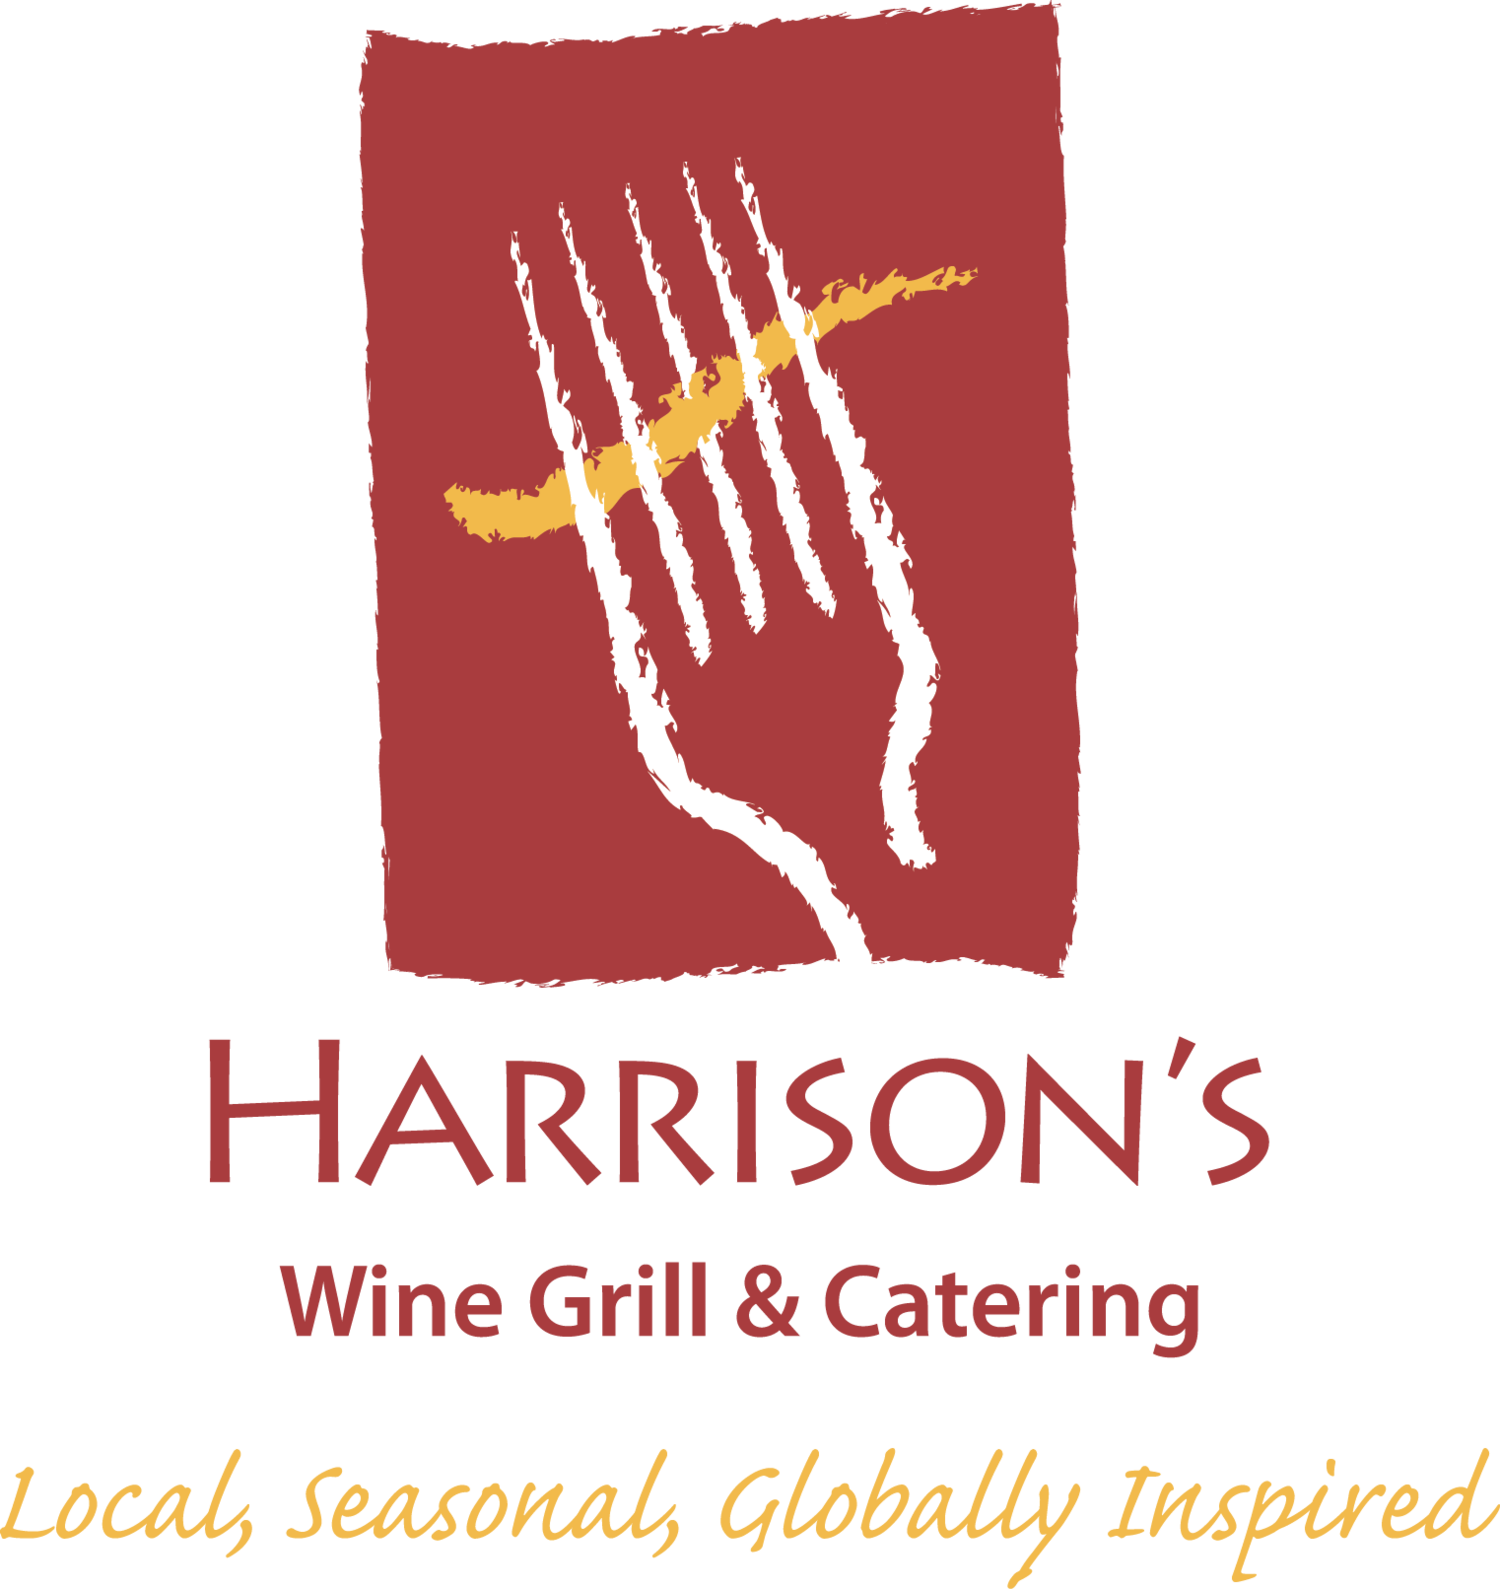 Harrison's Wine Grill & Catering | State College, PA